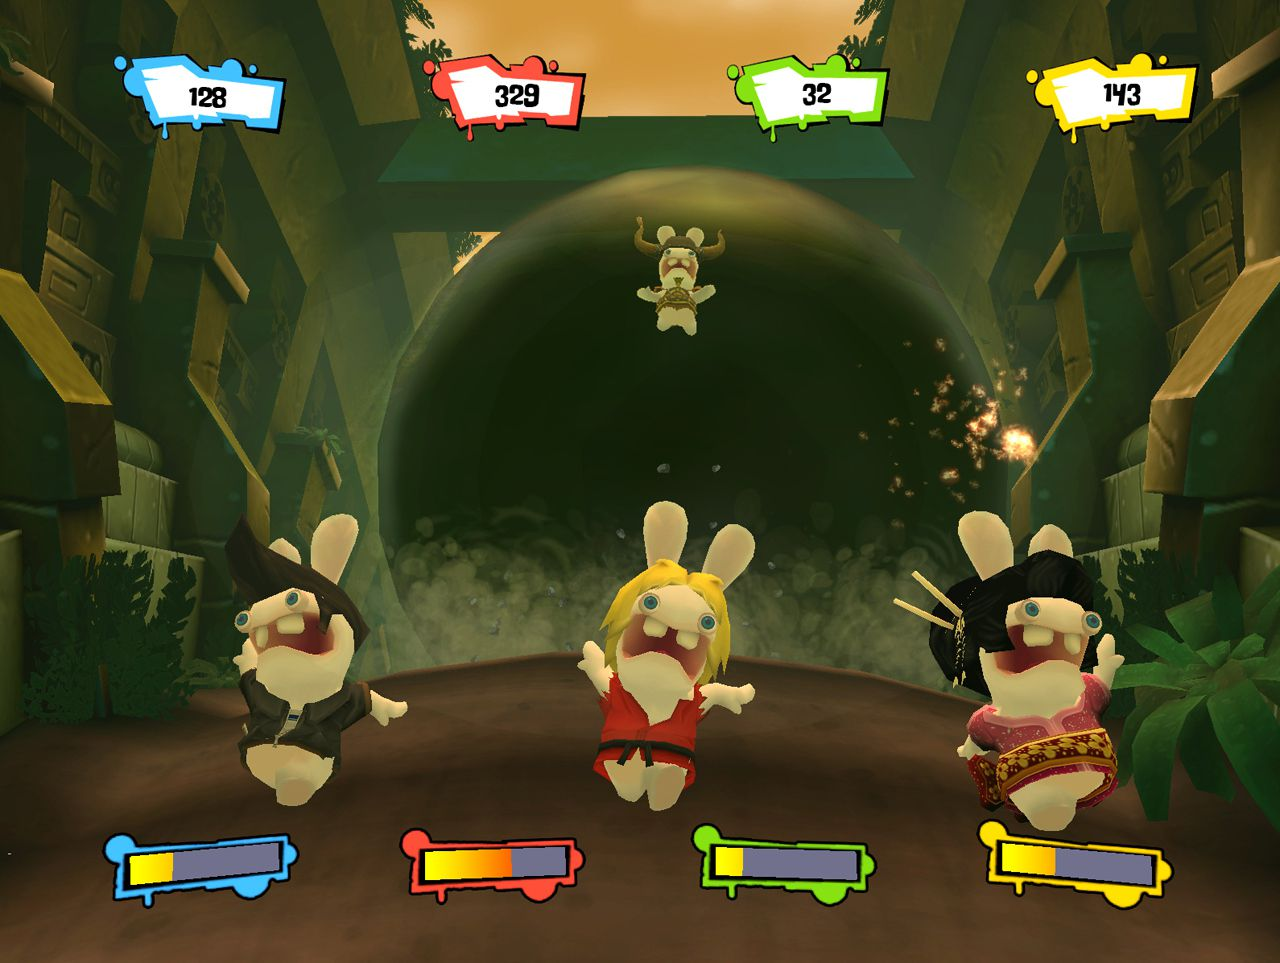 Filme Rayman pertaining to test rayman contre les lapins encore plus crétins - gamekult